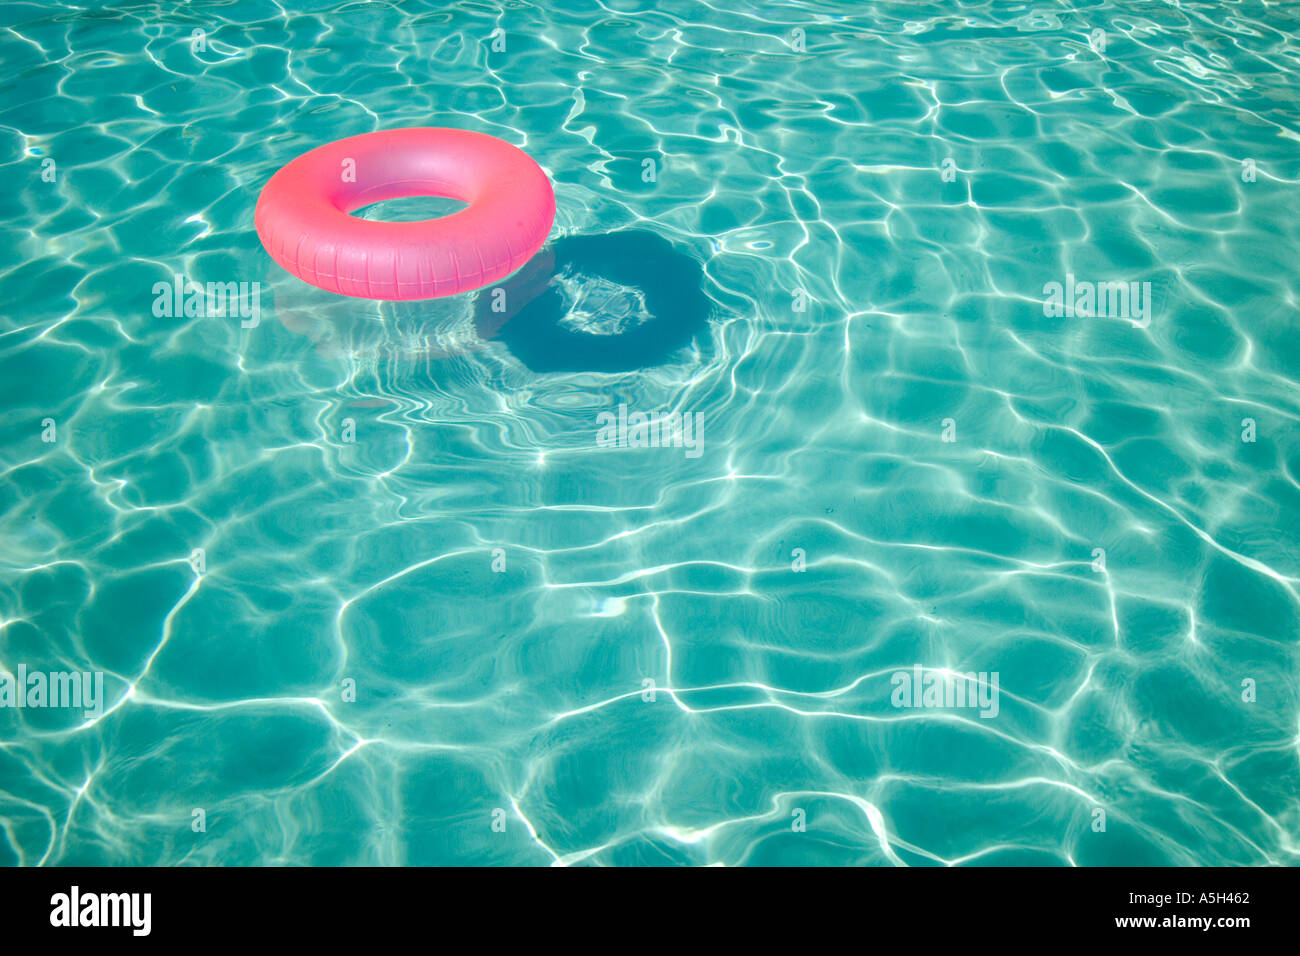 Floatation device in a swimming pool Stock Photo